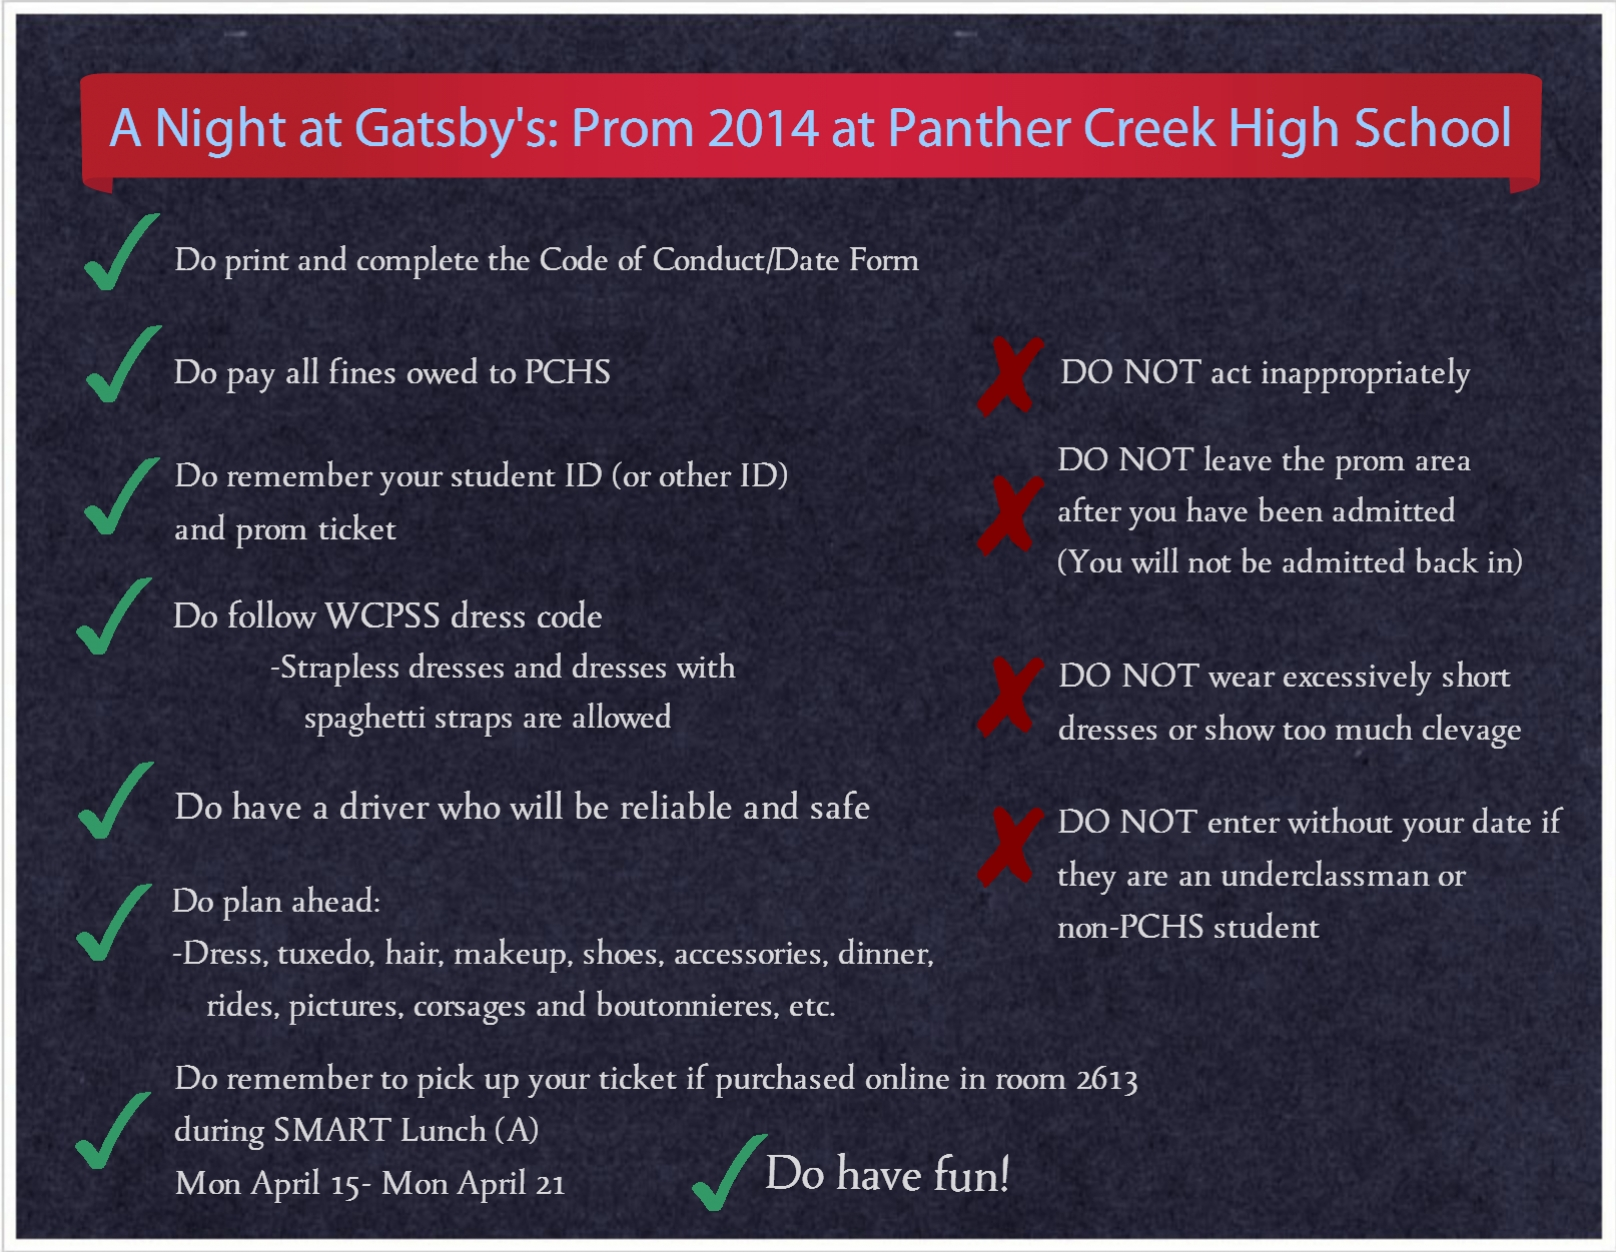 panther creek news network a night at gatsby s things you need a night at gatsby s things you need to know for prom 2014